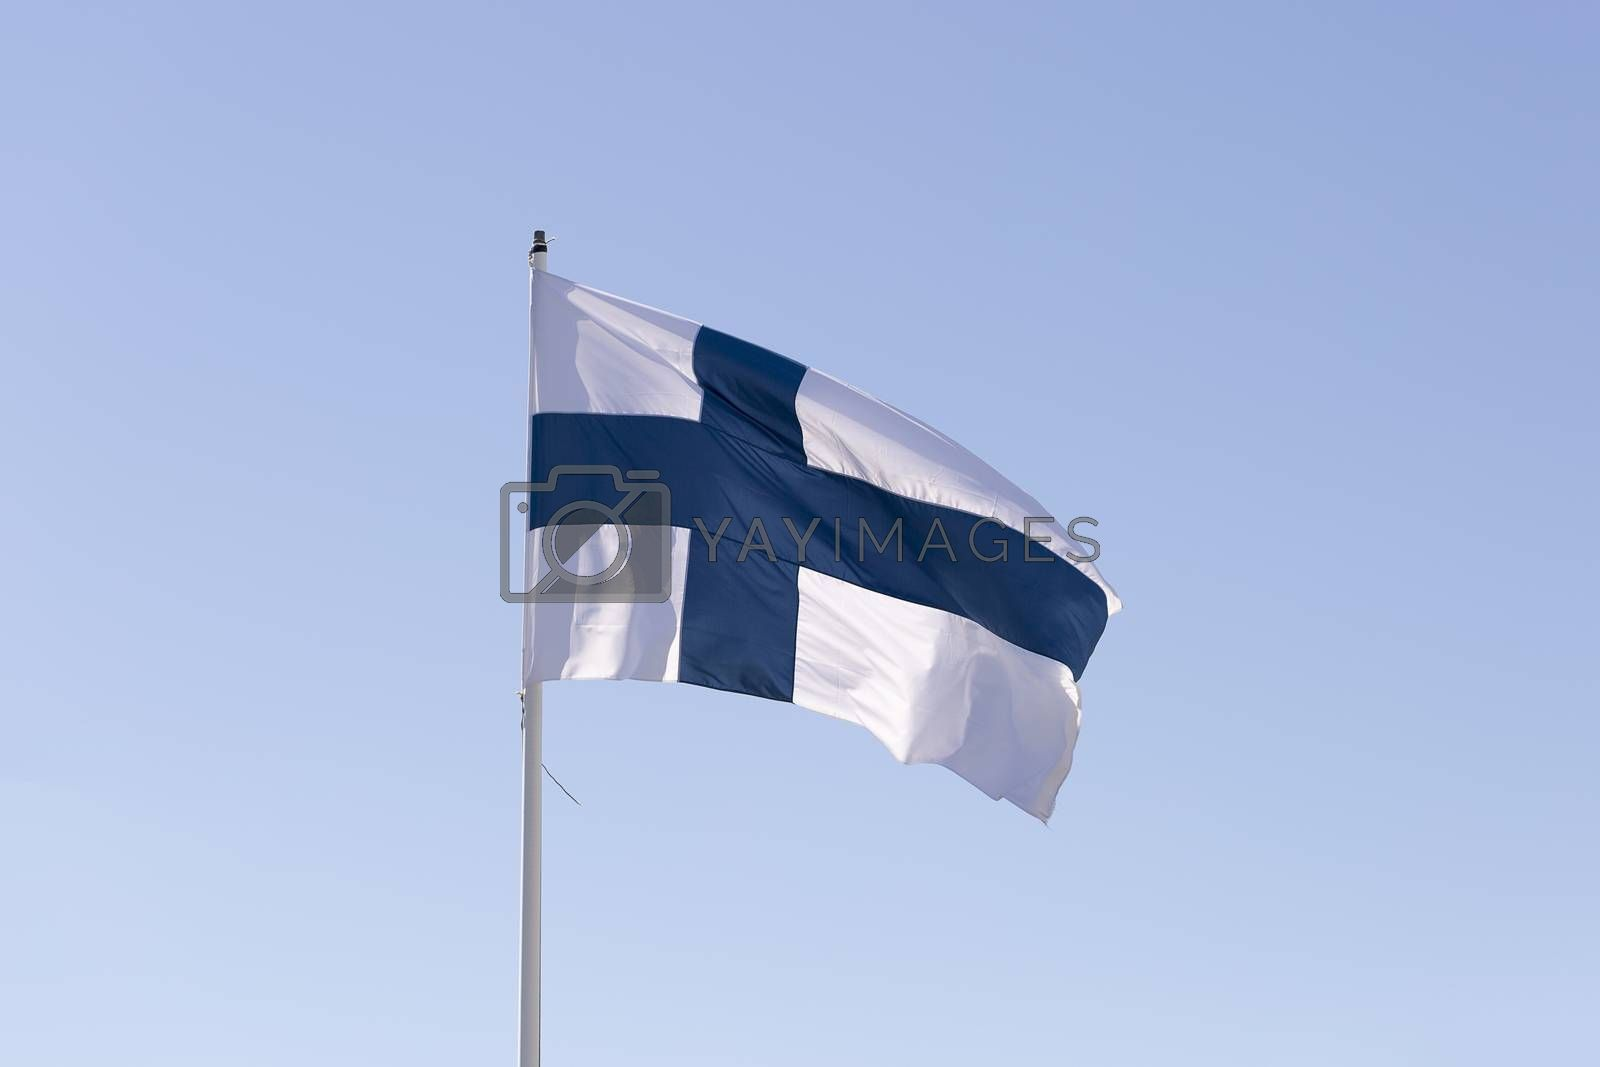 The Flag of Finland Waving in the Wind by Emmoth